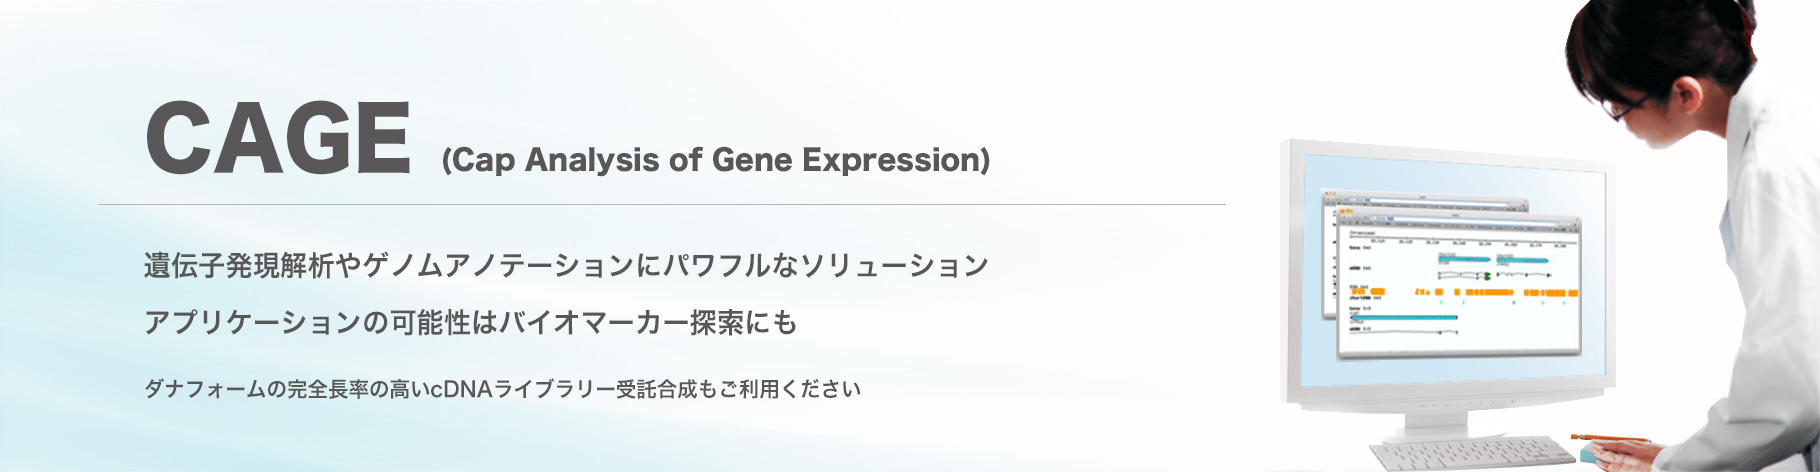 CAGE - Cap Analysis of Gene Expression